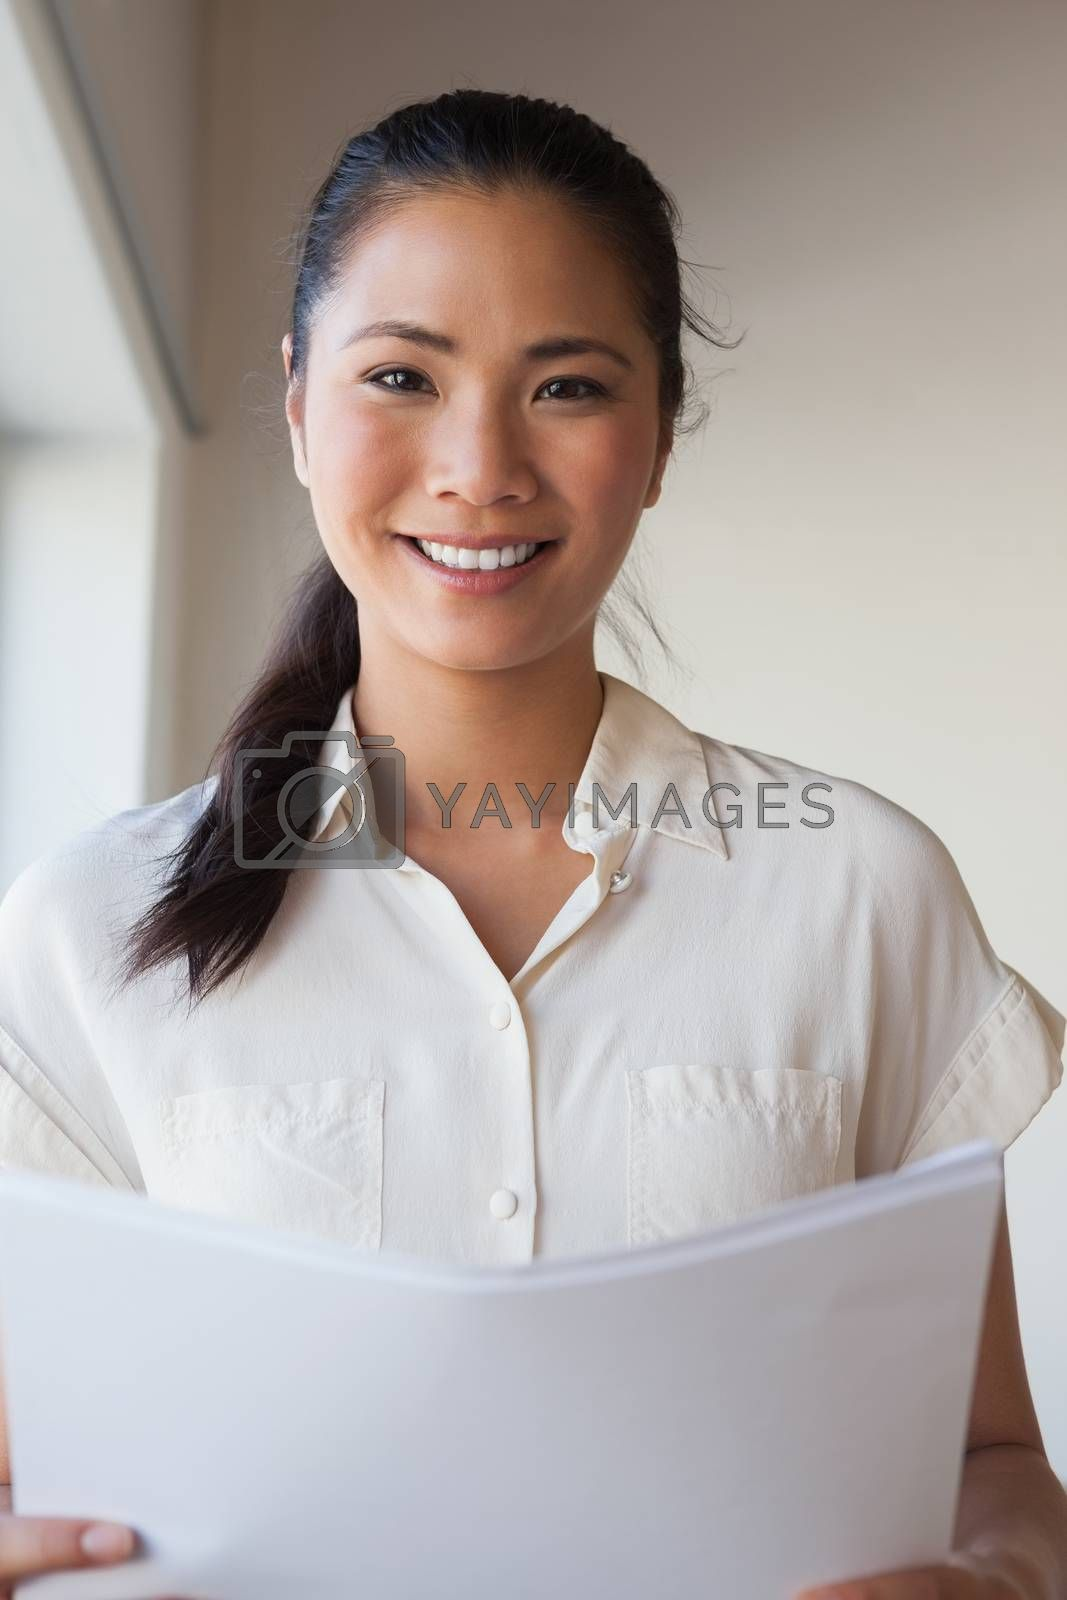 Royalty free image of Casual businesswoman holding document and smiling at camera by Wavebreakmedia